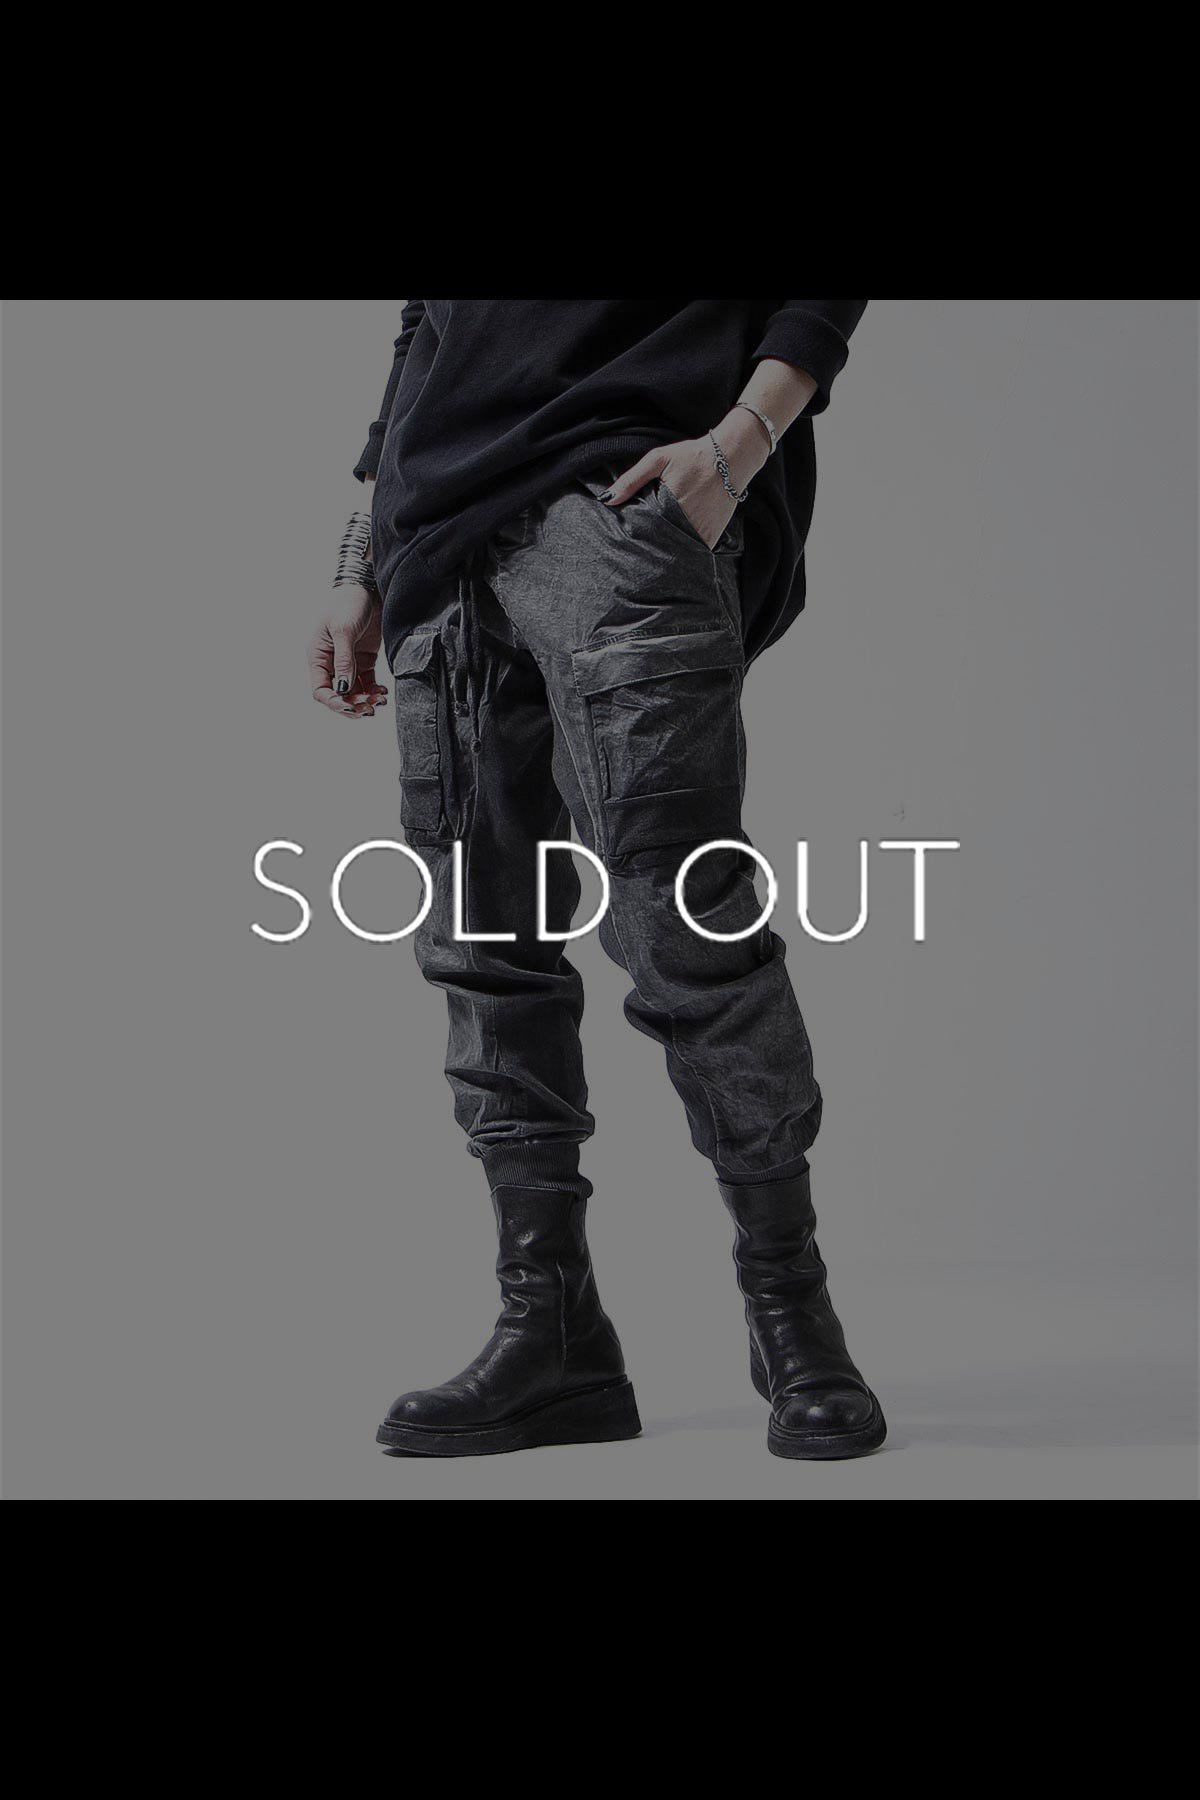 <img class='new_mark_img1' src='https://img.shop-pro.jp/img/new/icons8.gif' style='border:none;display:inline;margin:0px;padding:0px;width:auto;' />UNISEX PATCHED POCKET RIB PANTS MST237_GREY(BLACK OIL)